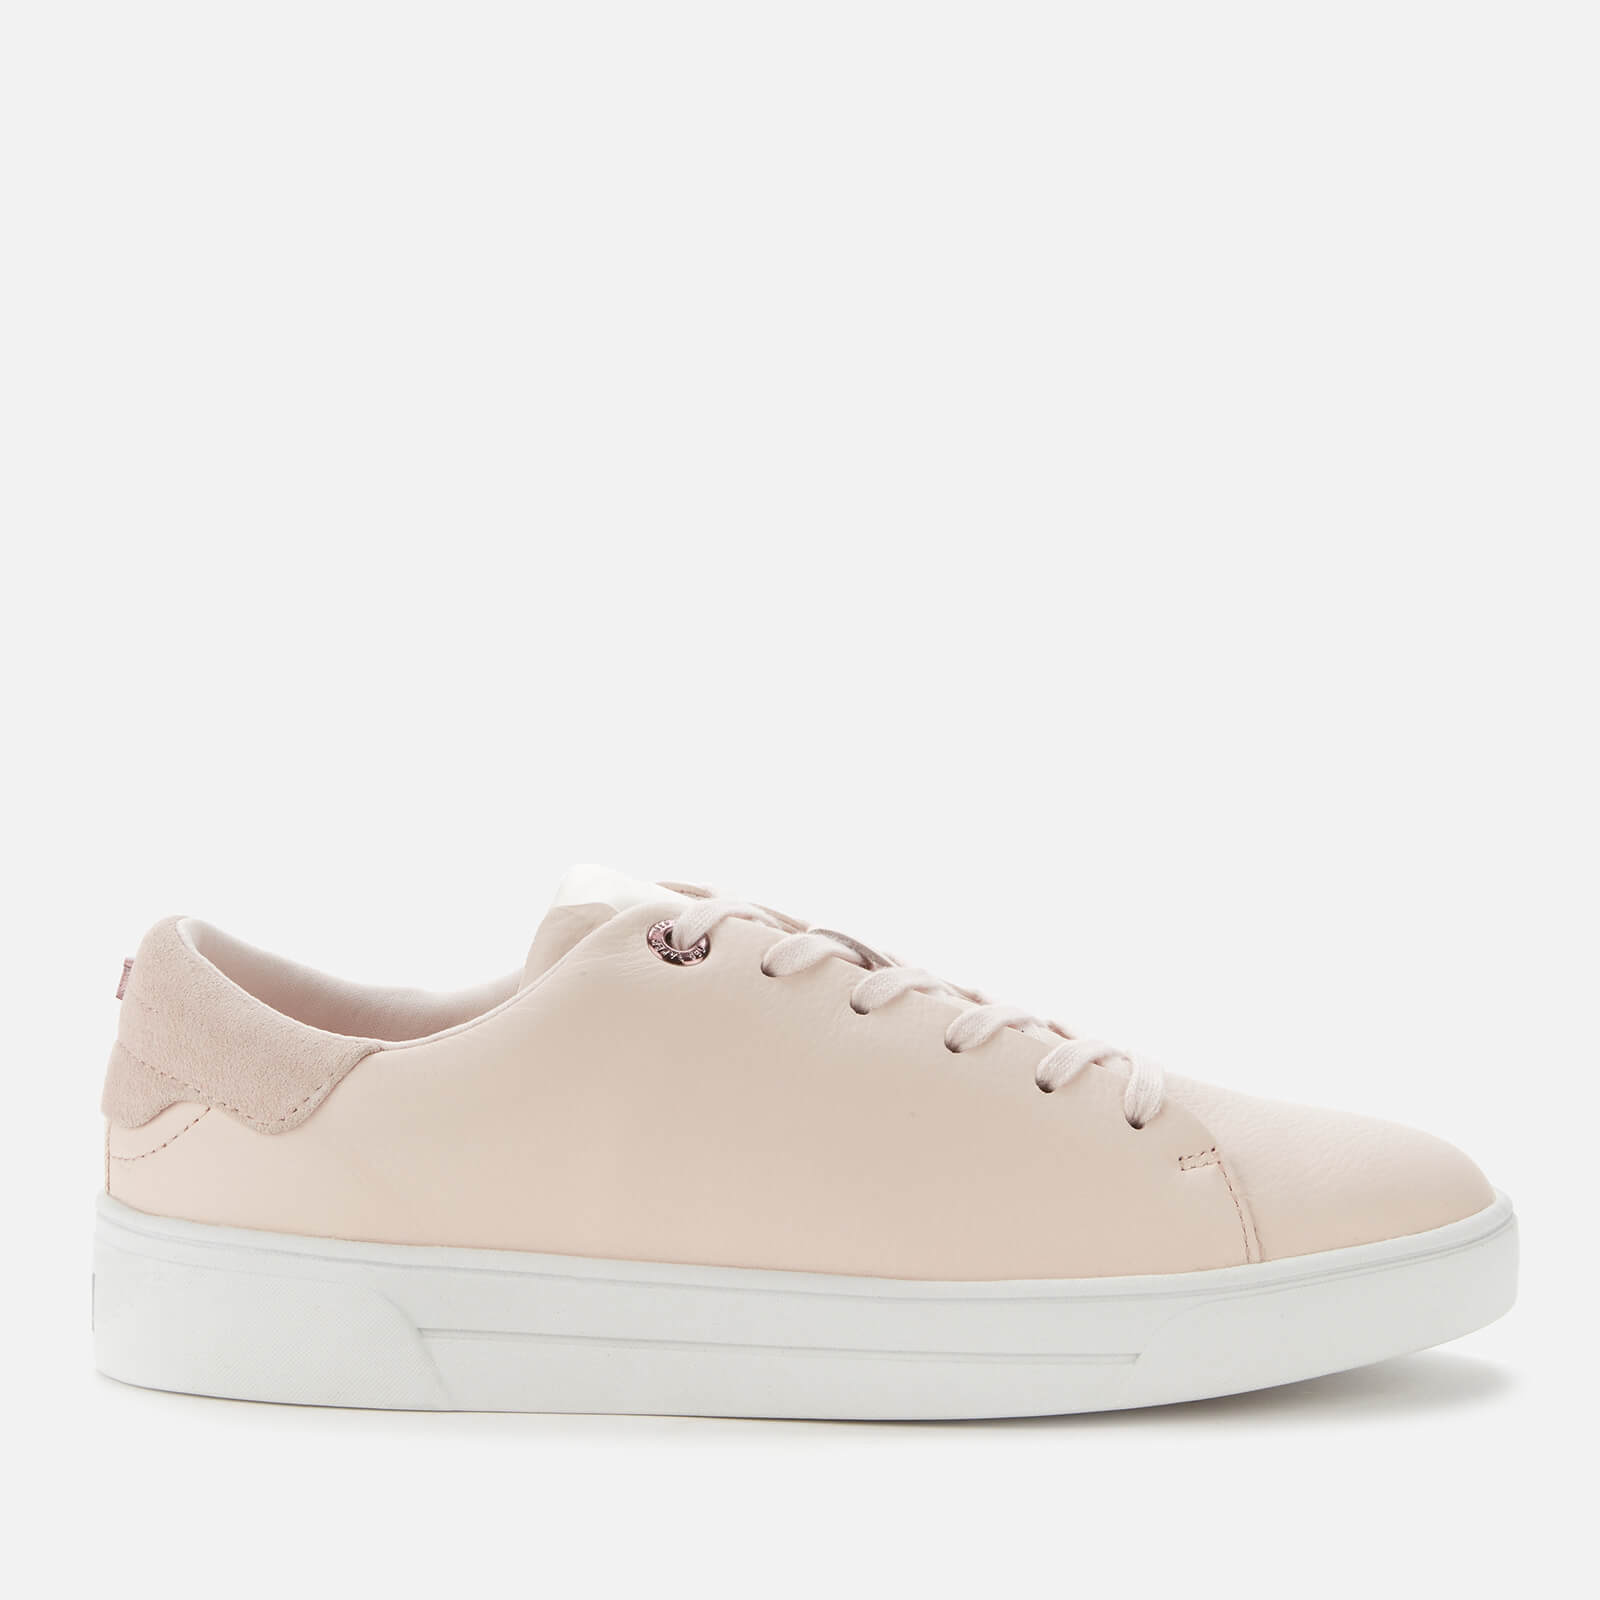 Ted Baker Women's Cleari Leather